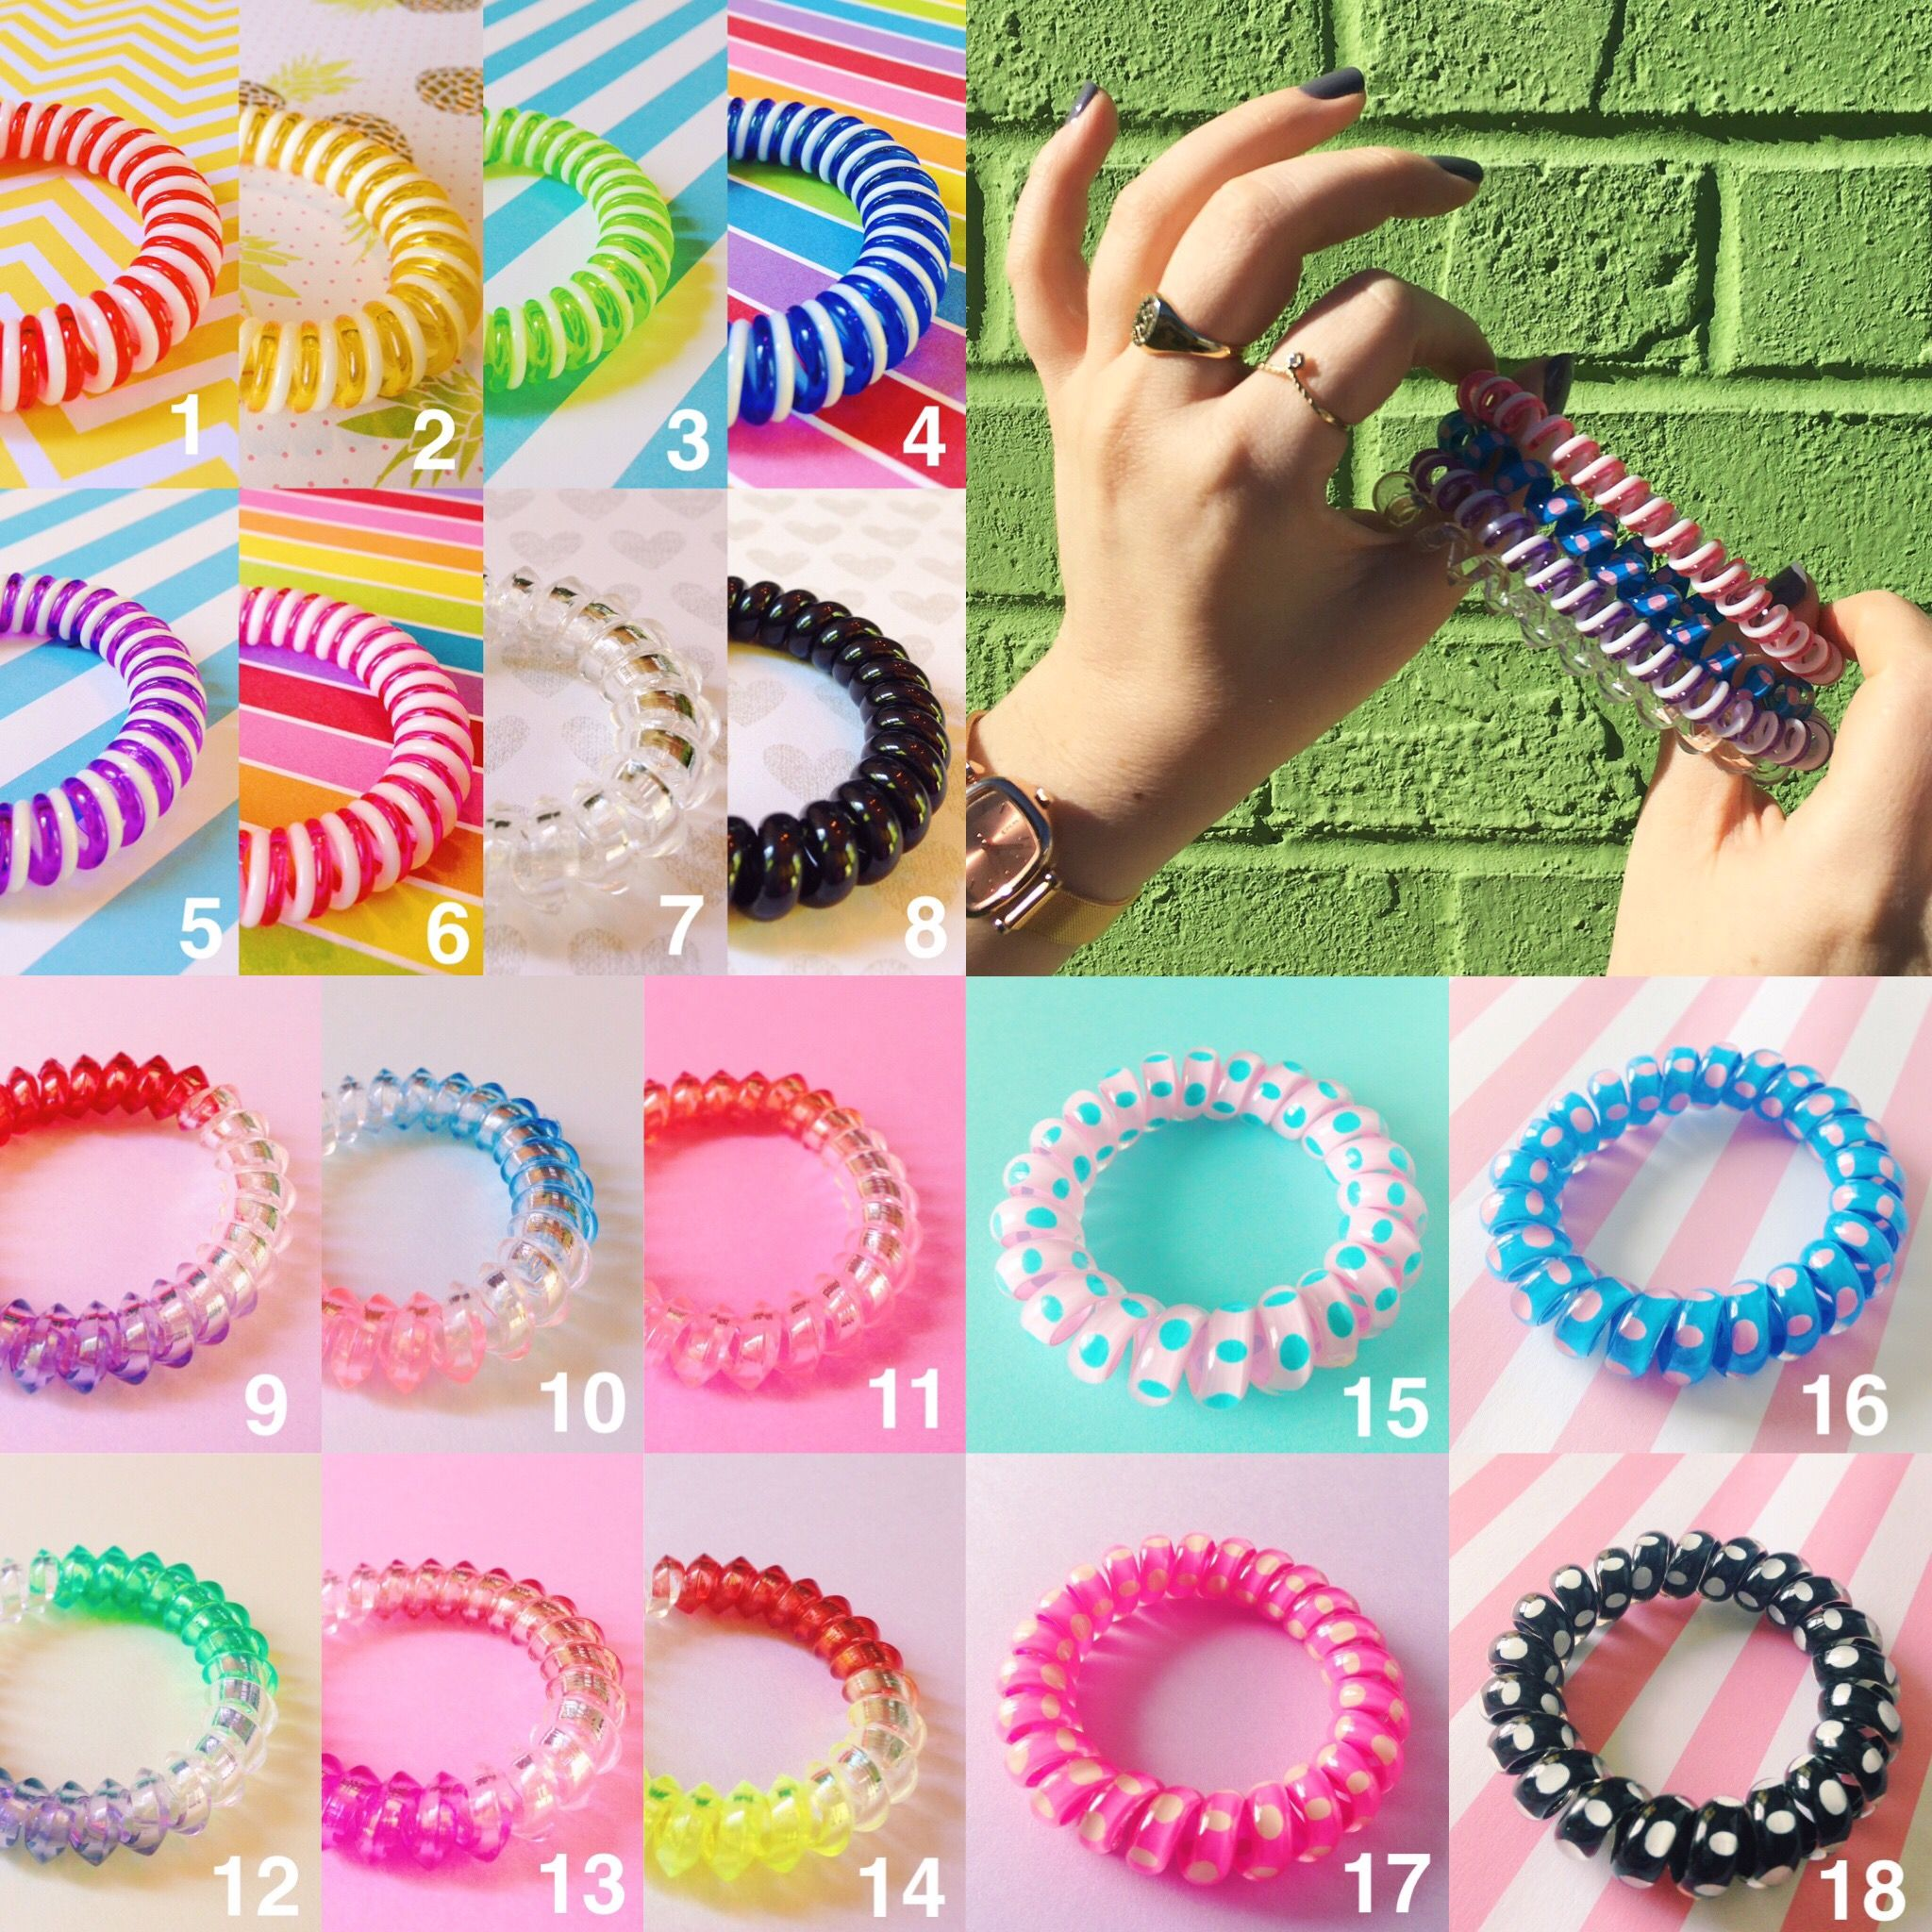 Koilhair.etsy.com colorful spiral hair bands <3